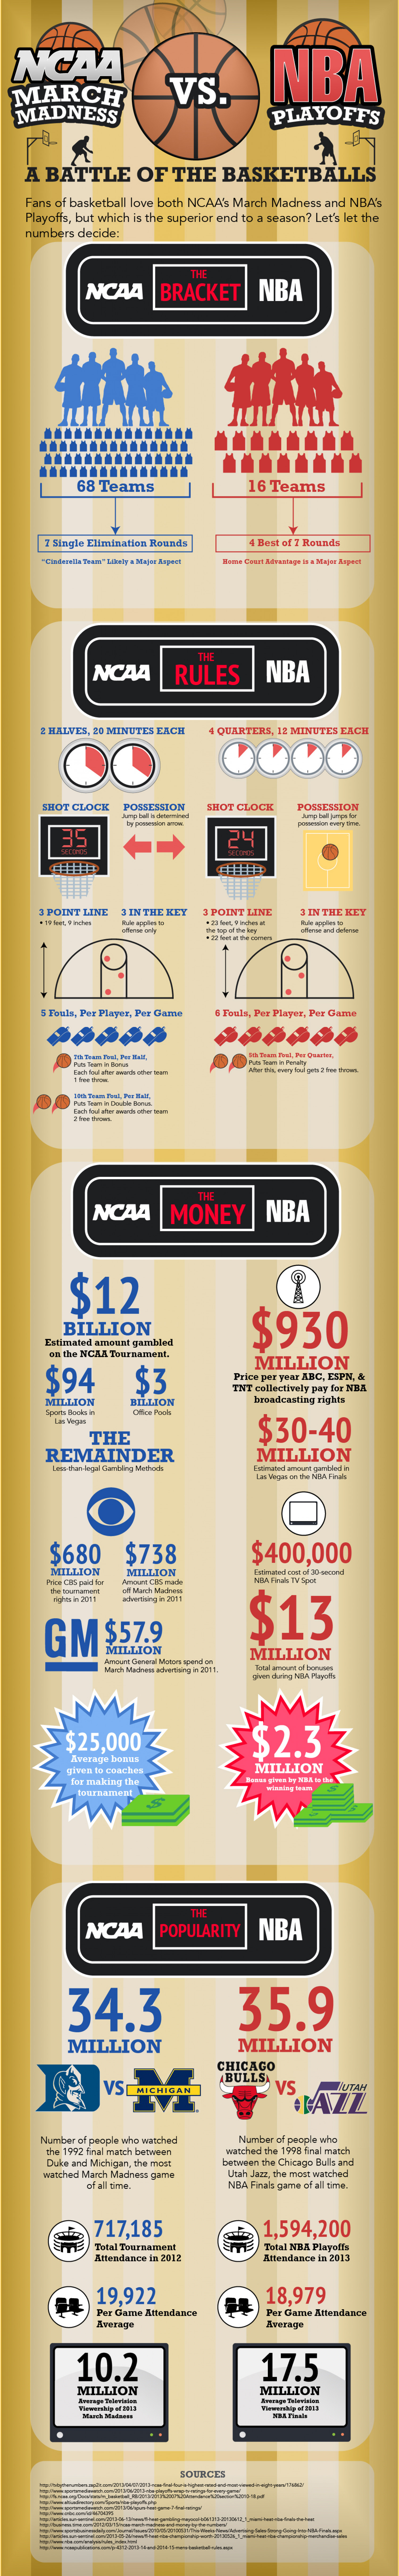 NCAA March Madness vs NBA Playoffs Infographic